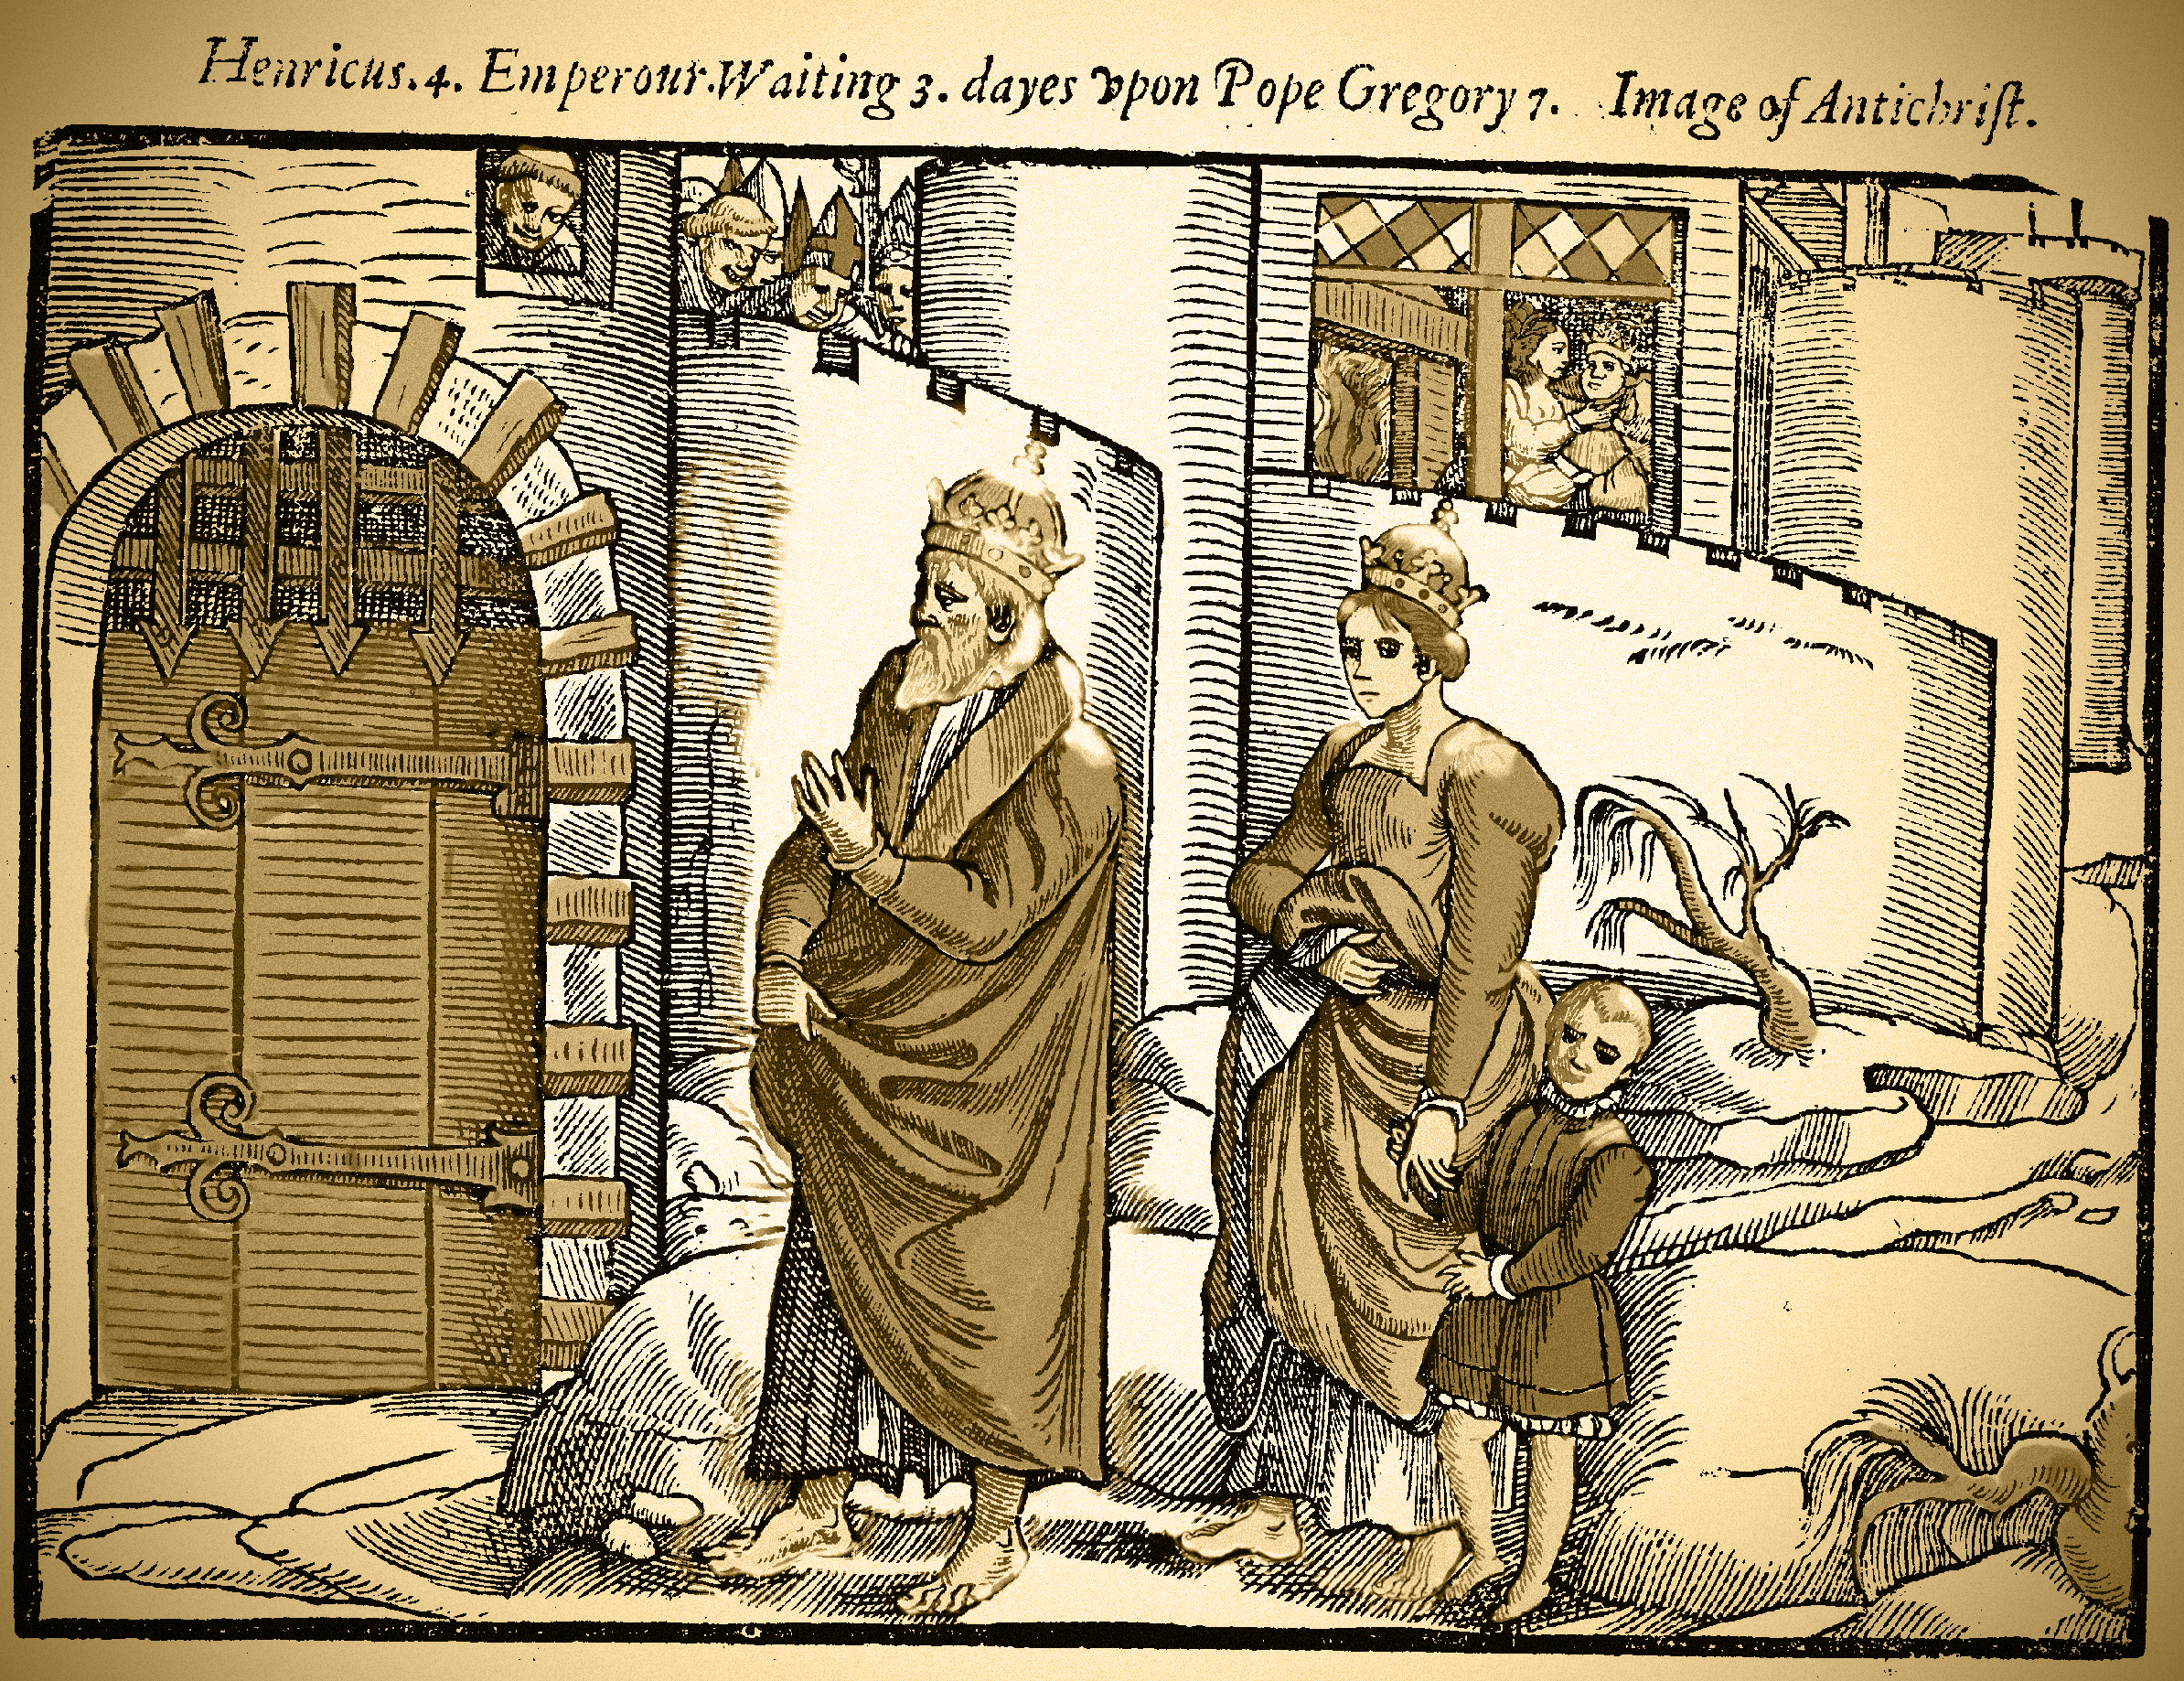 """Henry IV waiting outside the gates of Canossa Castle whilst ecclesiastical leaders jeer from inside the castle walls. Captions read """"Henricus 4 Emperour Waiting 3 dayes upon Pope Gregory 7. Image of Antichrist."""" Woodcut from Acts and Monuments (1570)"""